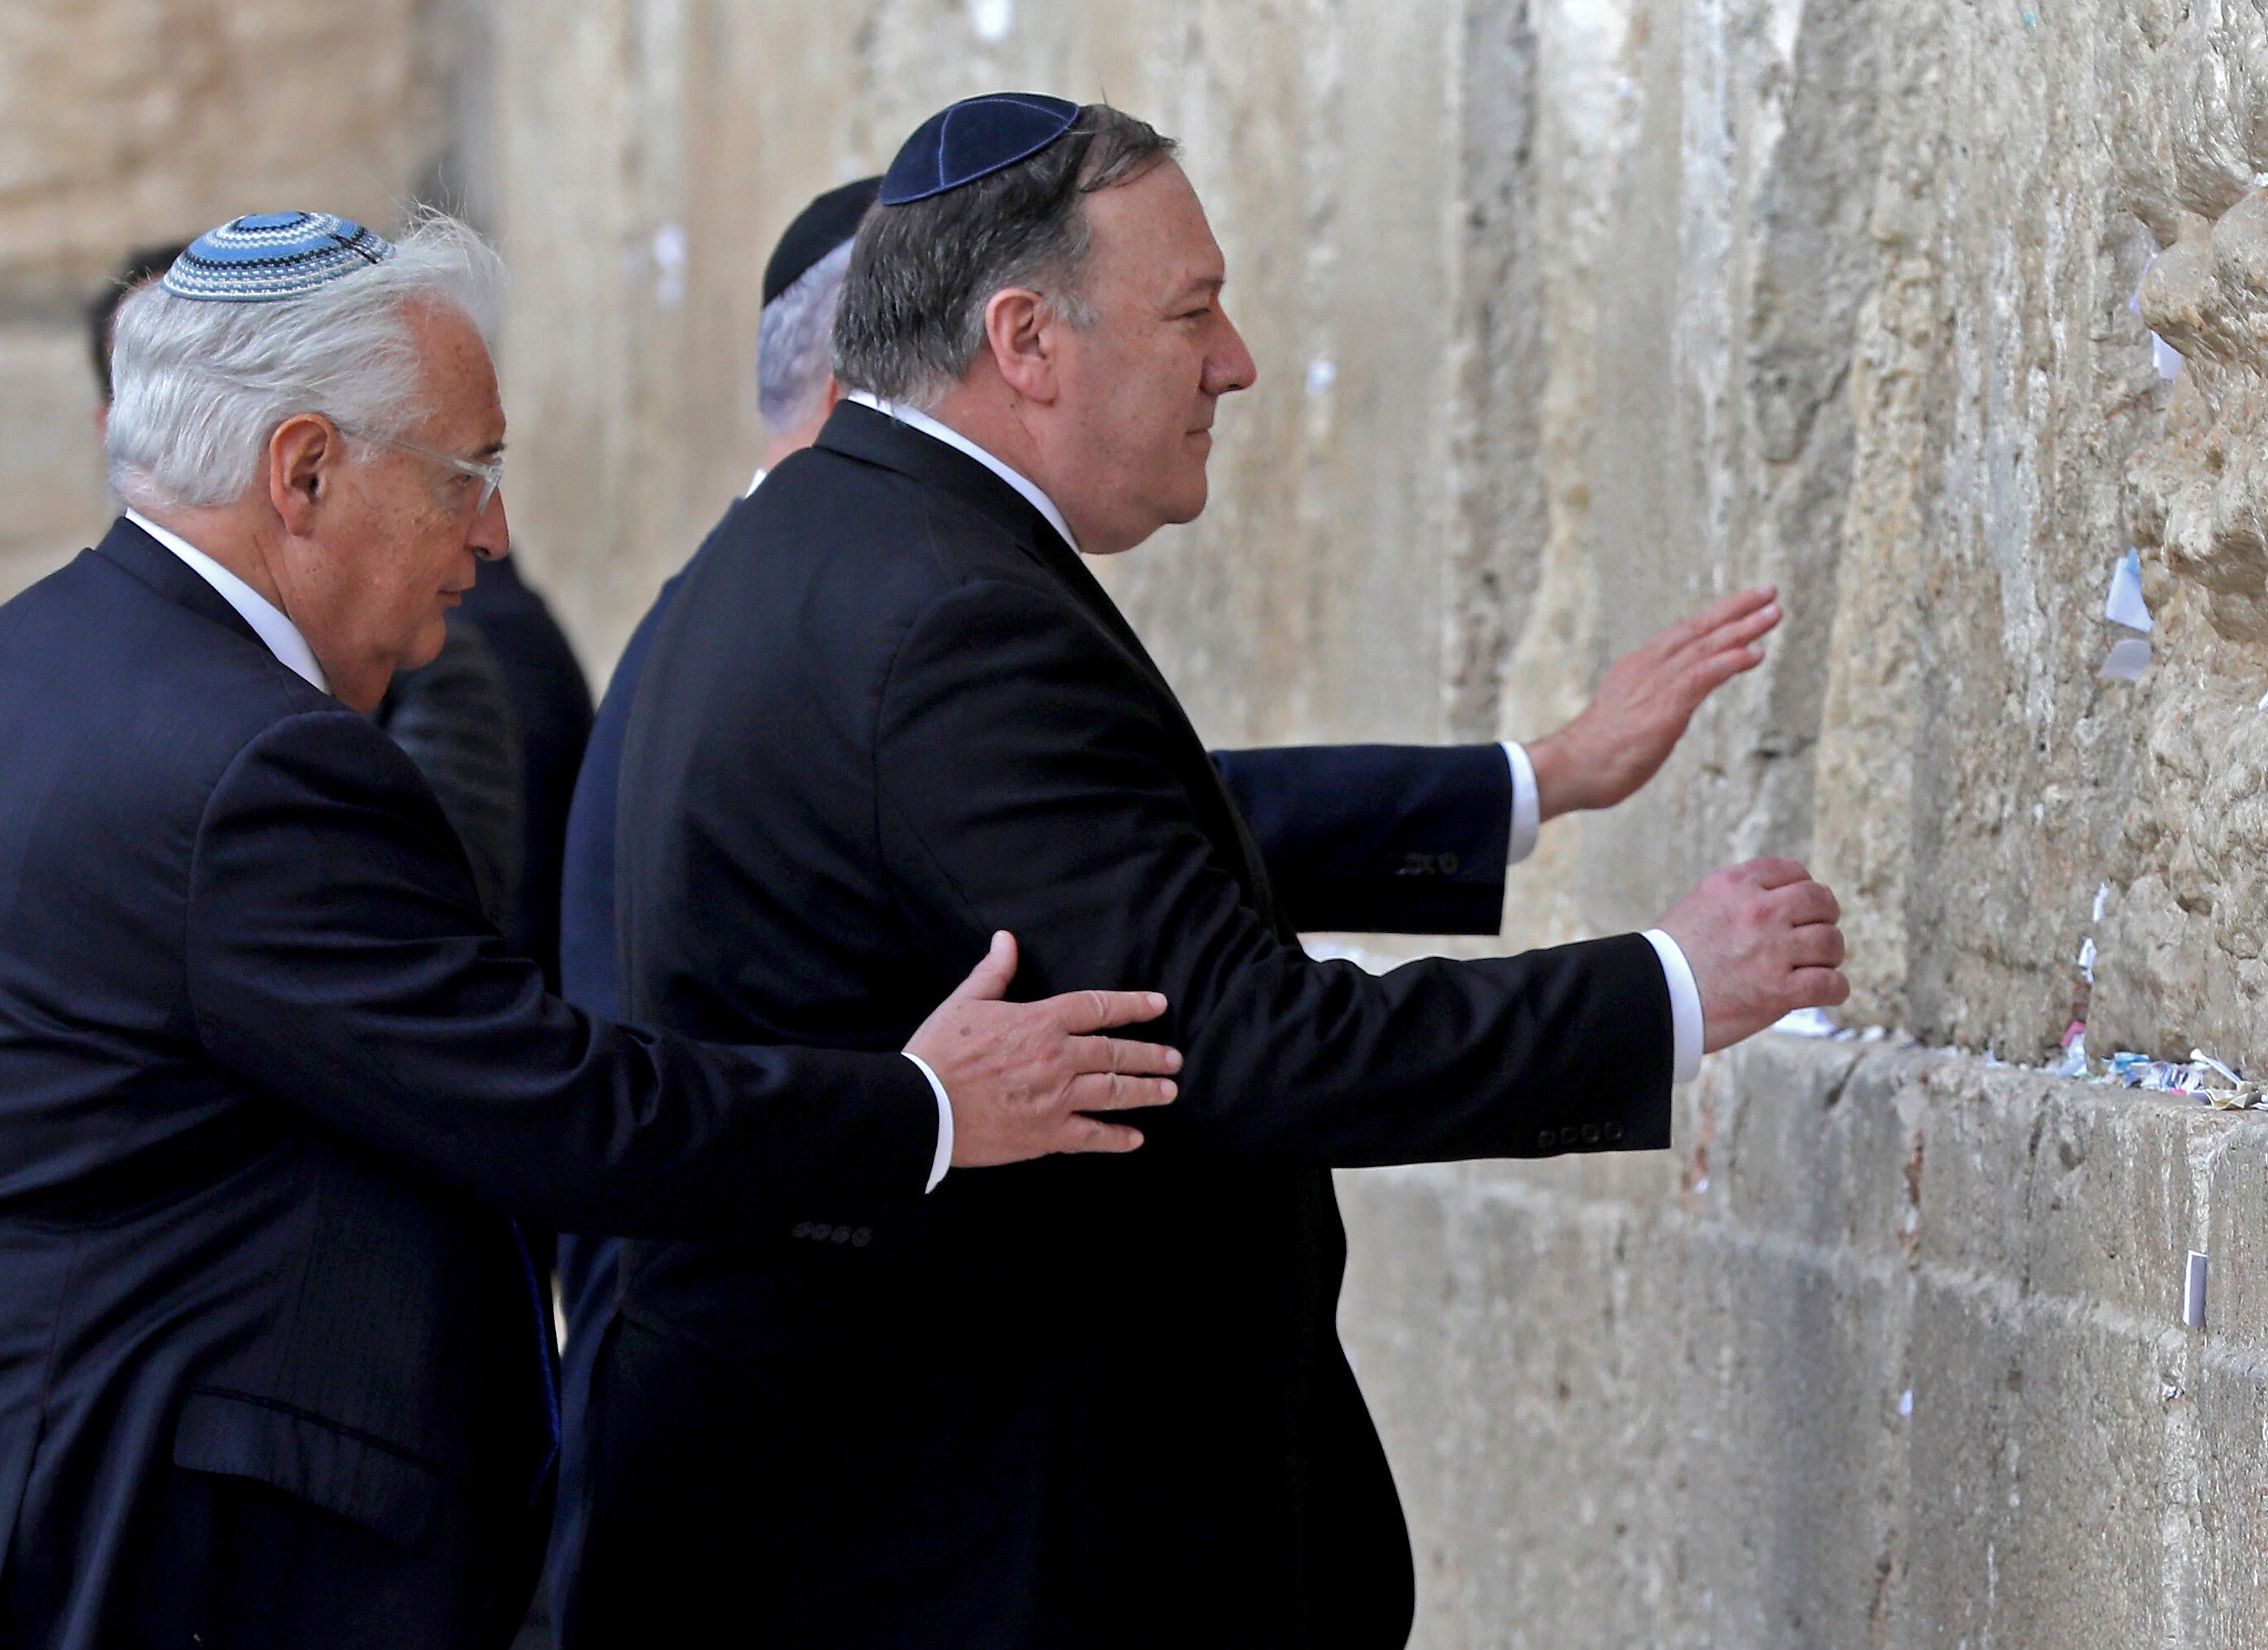 US Secretary of State Mike Pompeo (R), accompanied by US ambassador to Israel David Friedman (L), prays at the Western Wall in Jerusalem's Old City on March 21, 2019